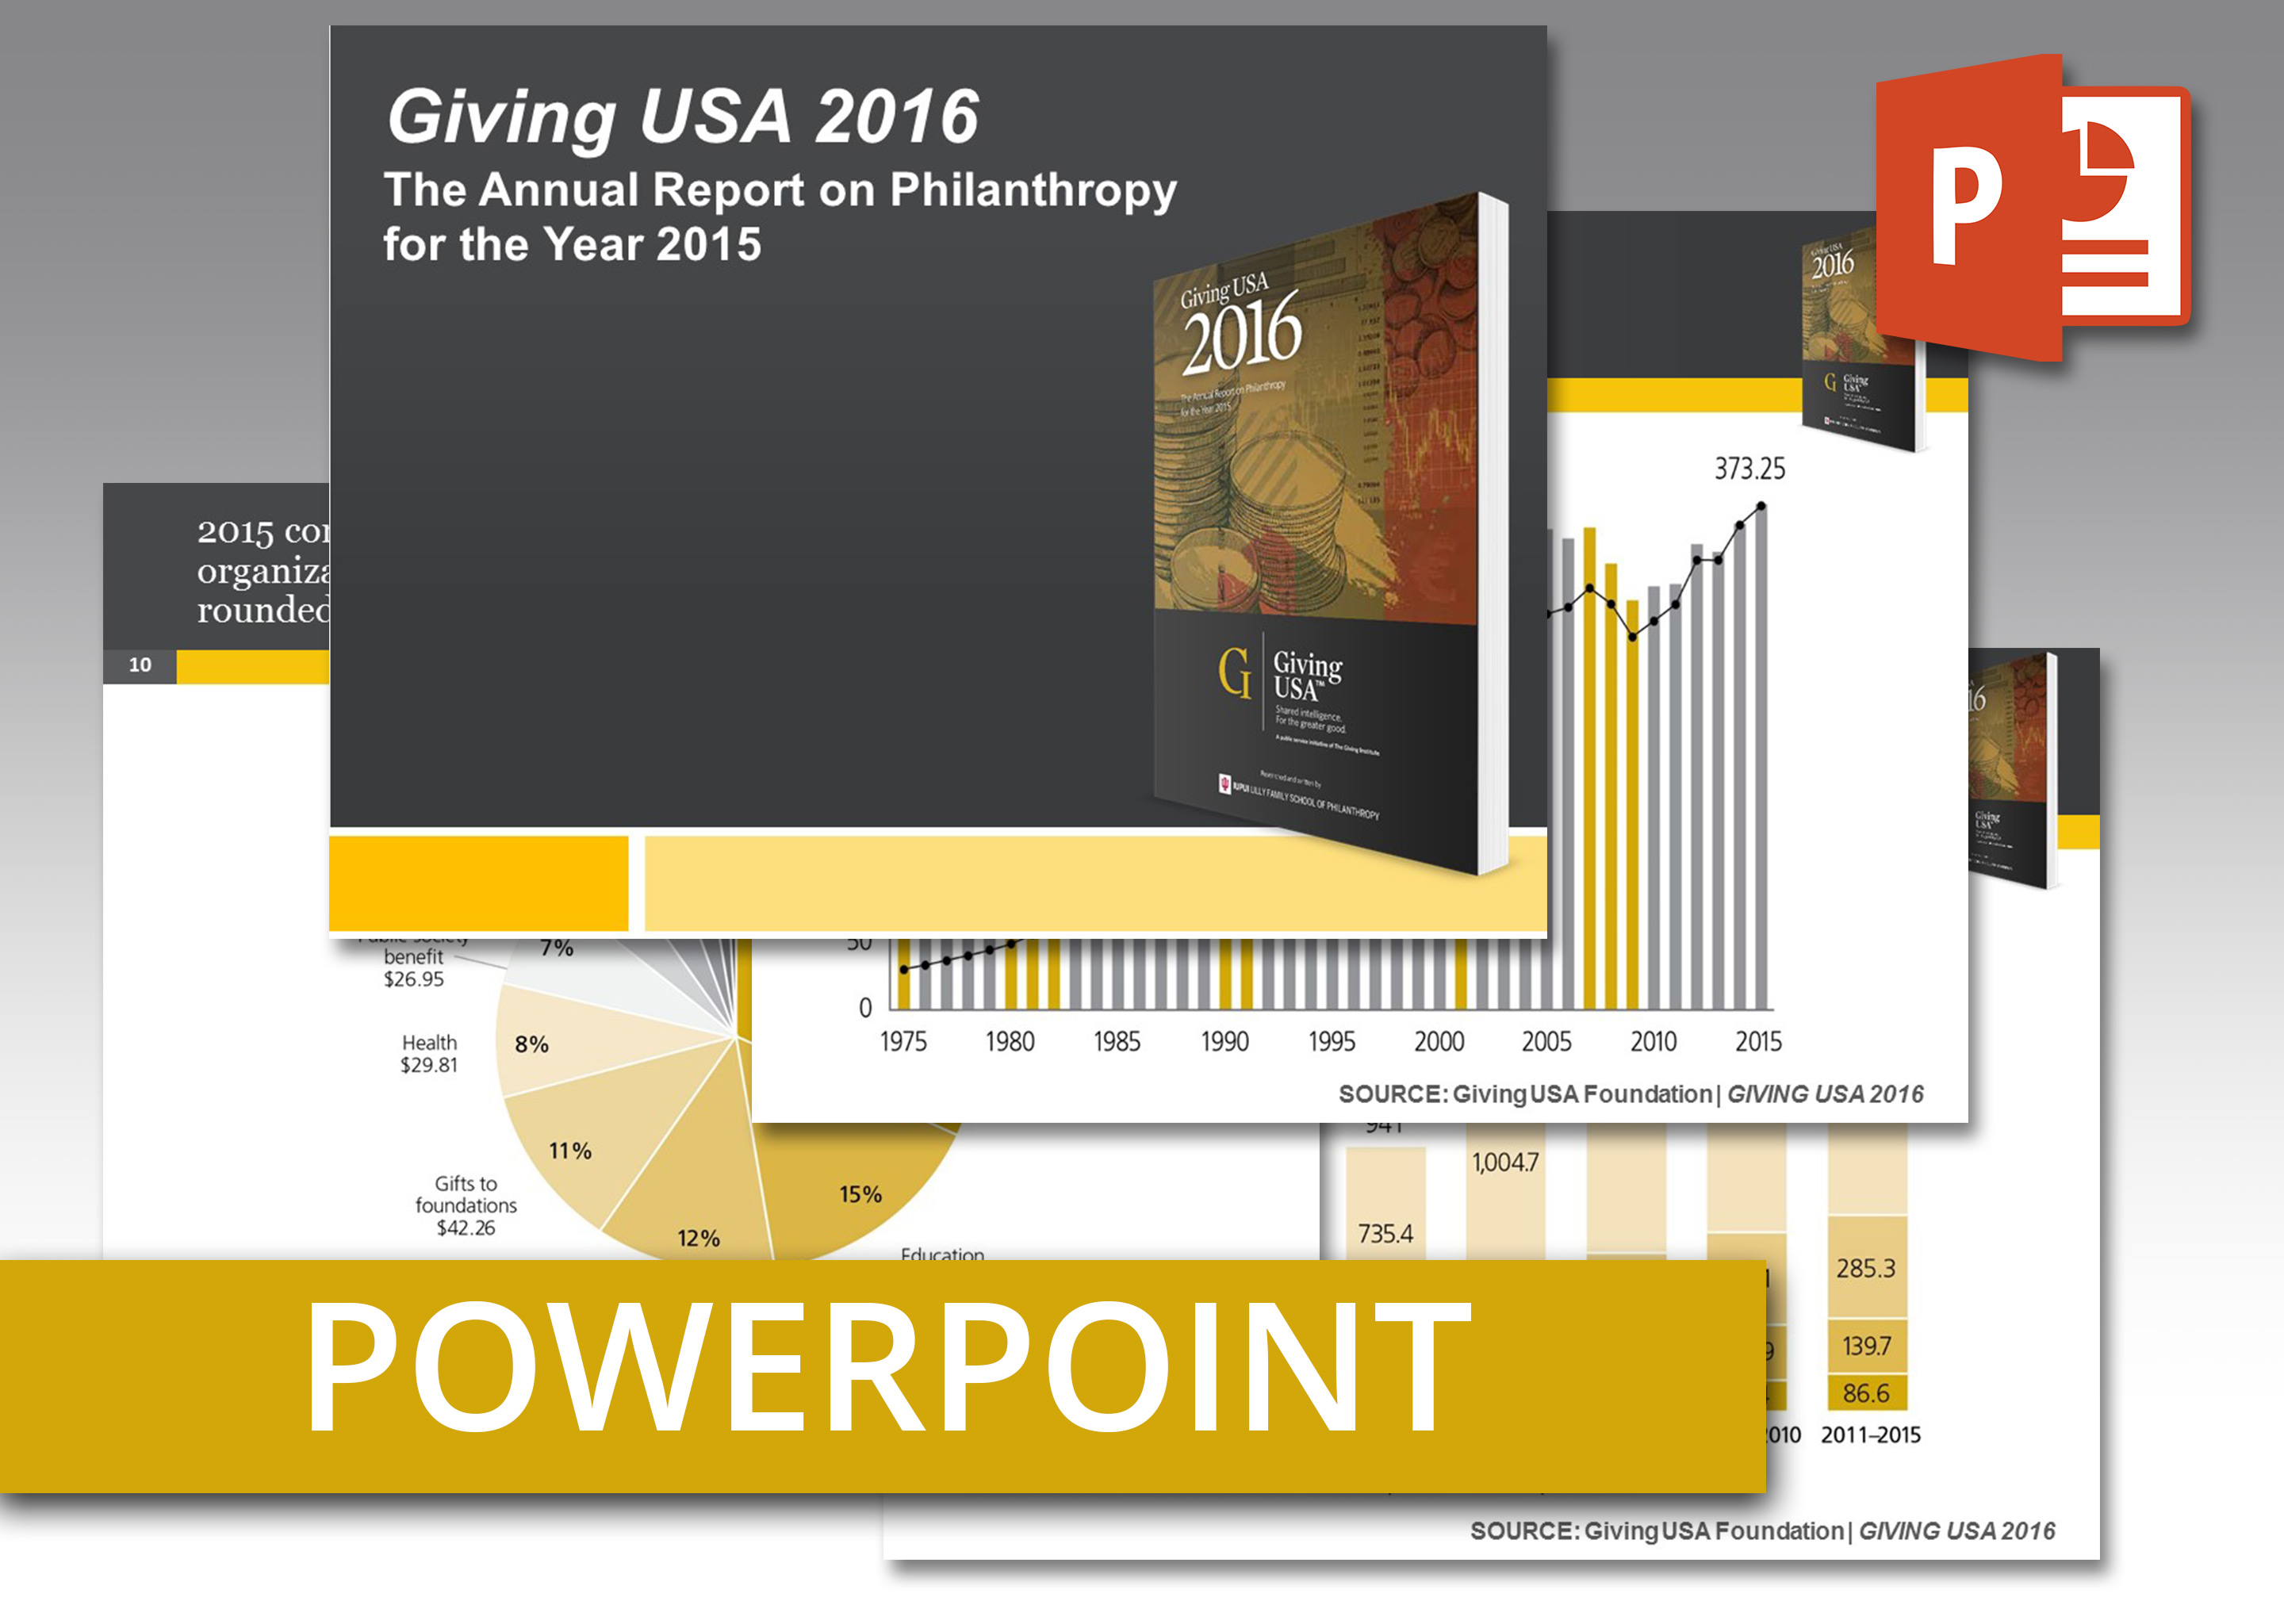 Coolmathgamesus  Marvelous Giving Usa  Powerpoint An Easytouse Presentation Of Report  With Fetching Giving Usa  Powerpoint An Easytouse Presentation Of Report Findings Including Talking Points With Comely Domestic Abuse Powerpoint Also Cva Powerpoint In Addition Total Quality Management Powerpoint Presentation And Presentation Designs Powerpoint As Well As Alcohol Awareness Powerpoint Presentation Additionally Powerpoint Camtasia From Givingusaorg With Coolmathgamesus  Fetching Giving Usa  Powerpoint An Easytouse Presentation Of Report  With Comely Giving Usa  Powerpoint An Easytouse Presentation Of Report Findings Including Talking Points And Marvelous Domestic Abuse Powerpoint Also Cva Powerpoint In Addition Total Quality Management Powerpoint Presentation From Givingusaorg